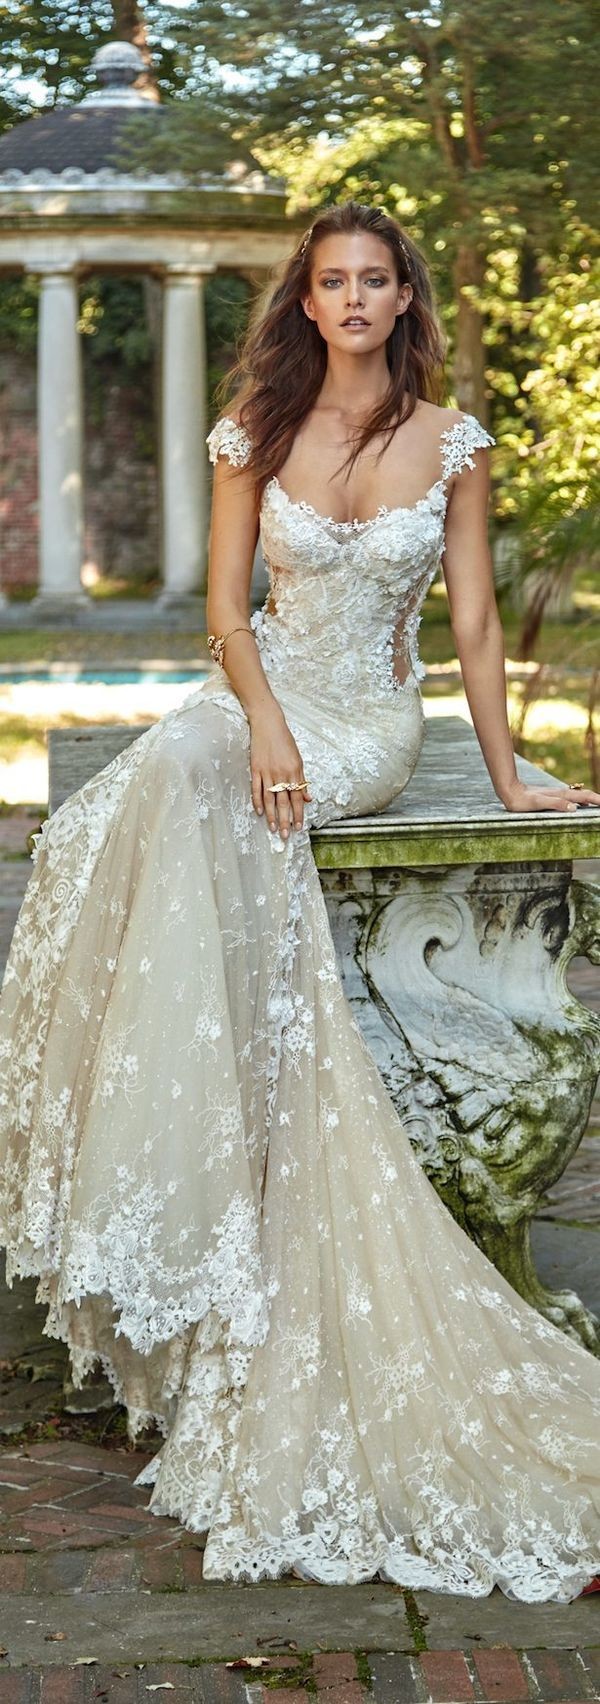 How much are wedding dresses   best Wedding Dresses images on Pinterest  Bridal collection